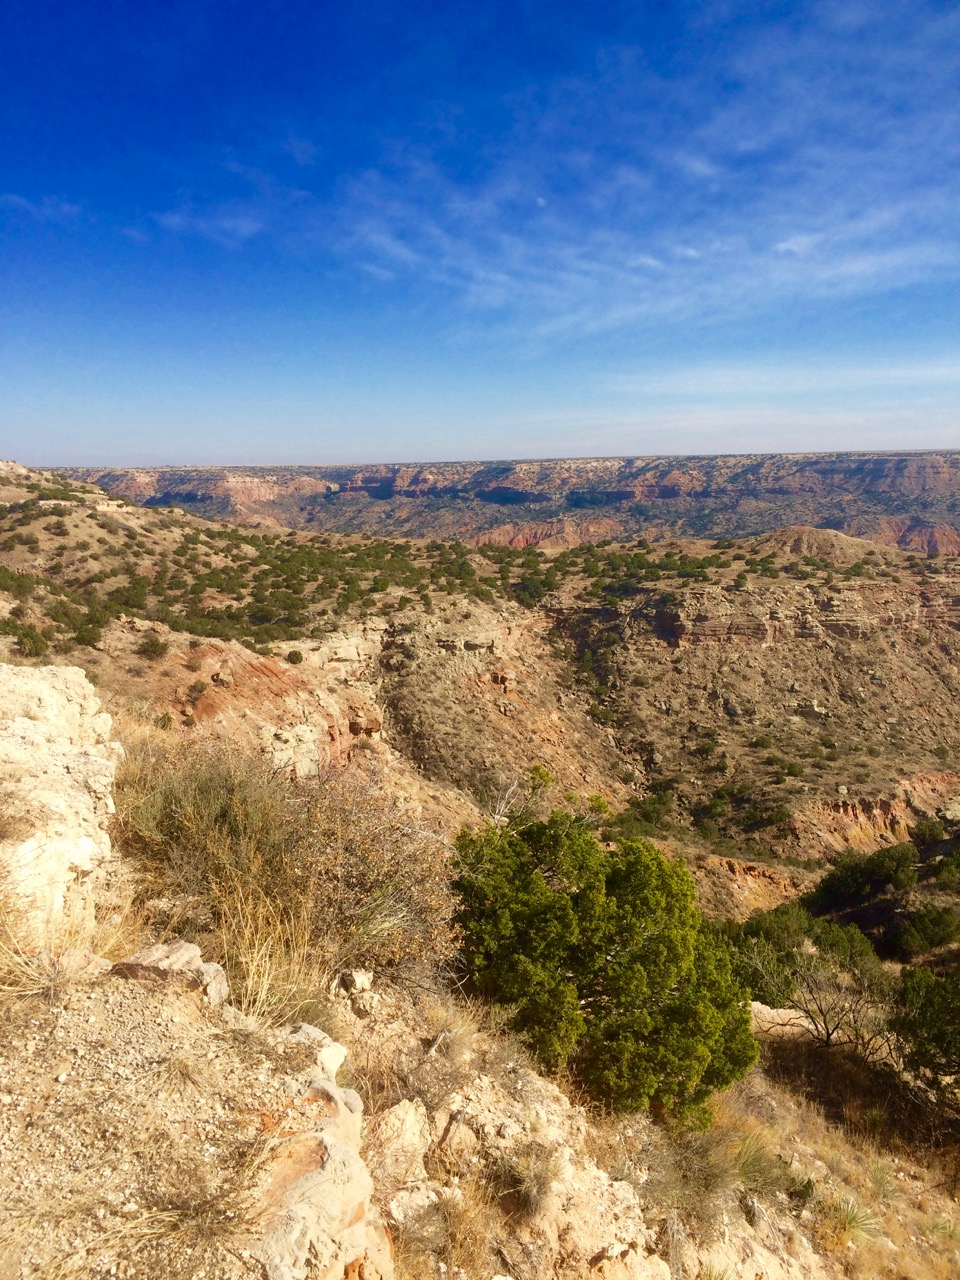 My visit to the breathtaking Palo Duro Canyon